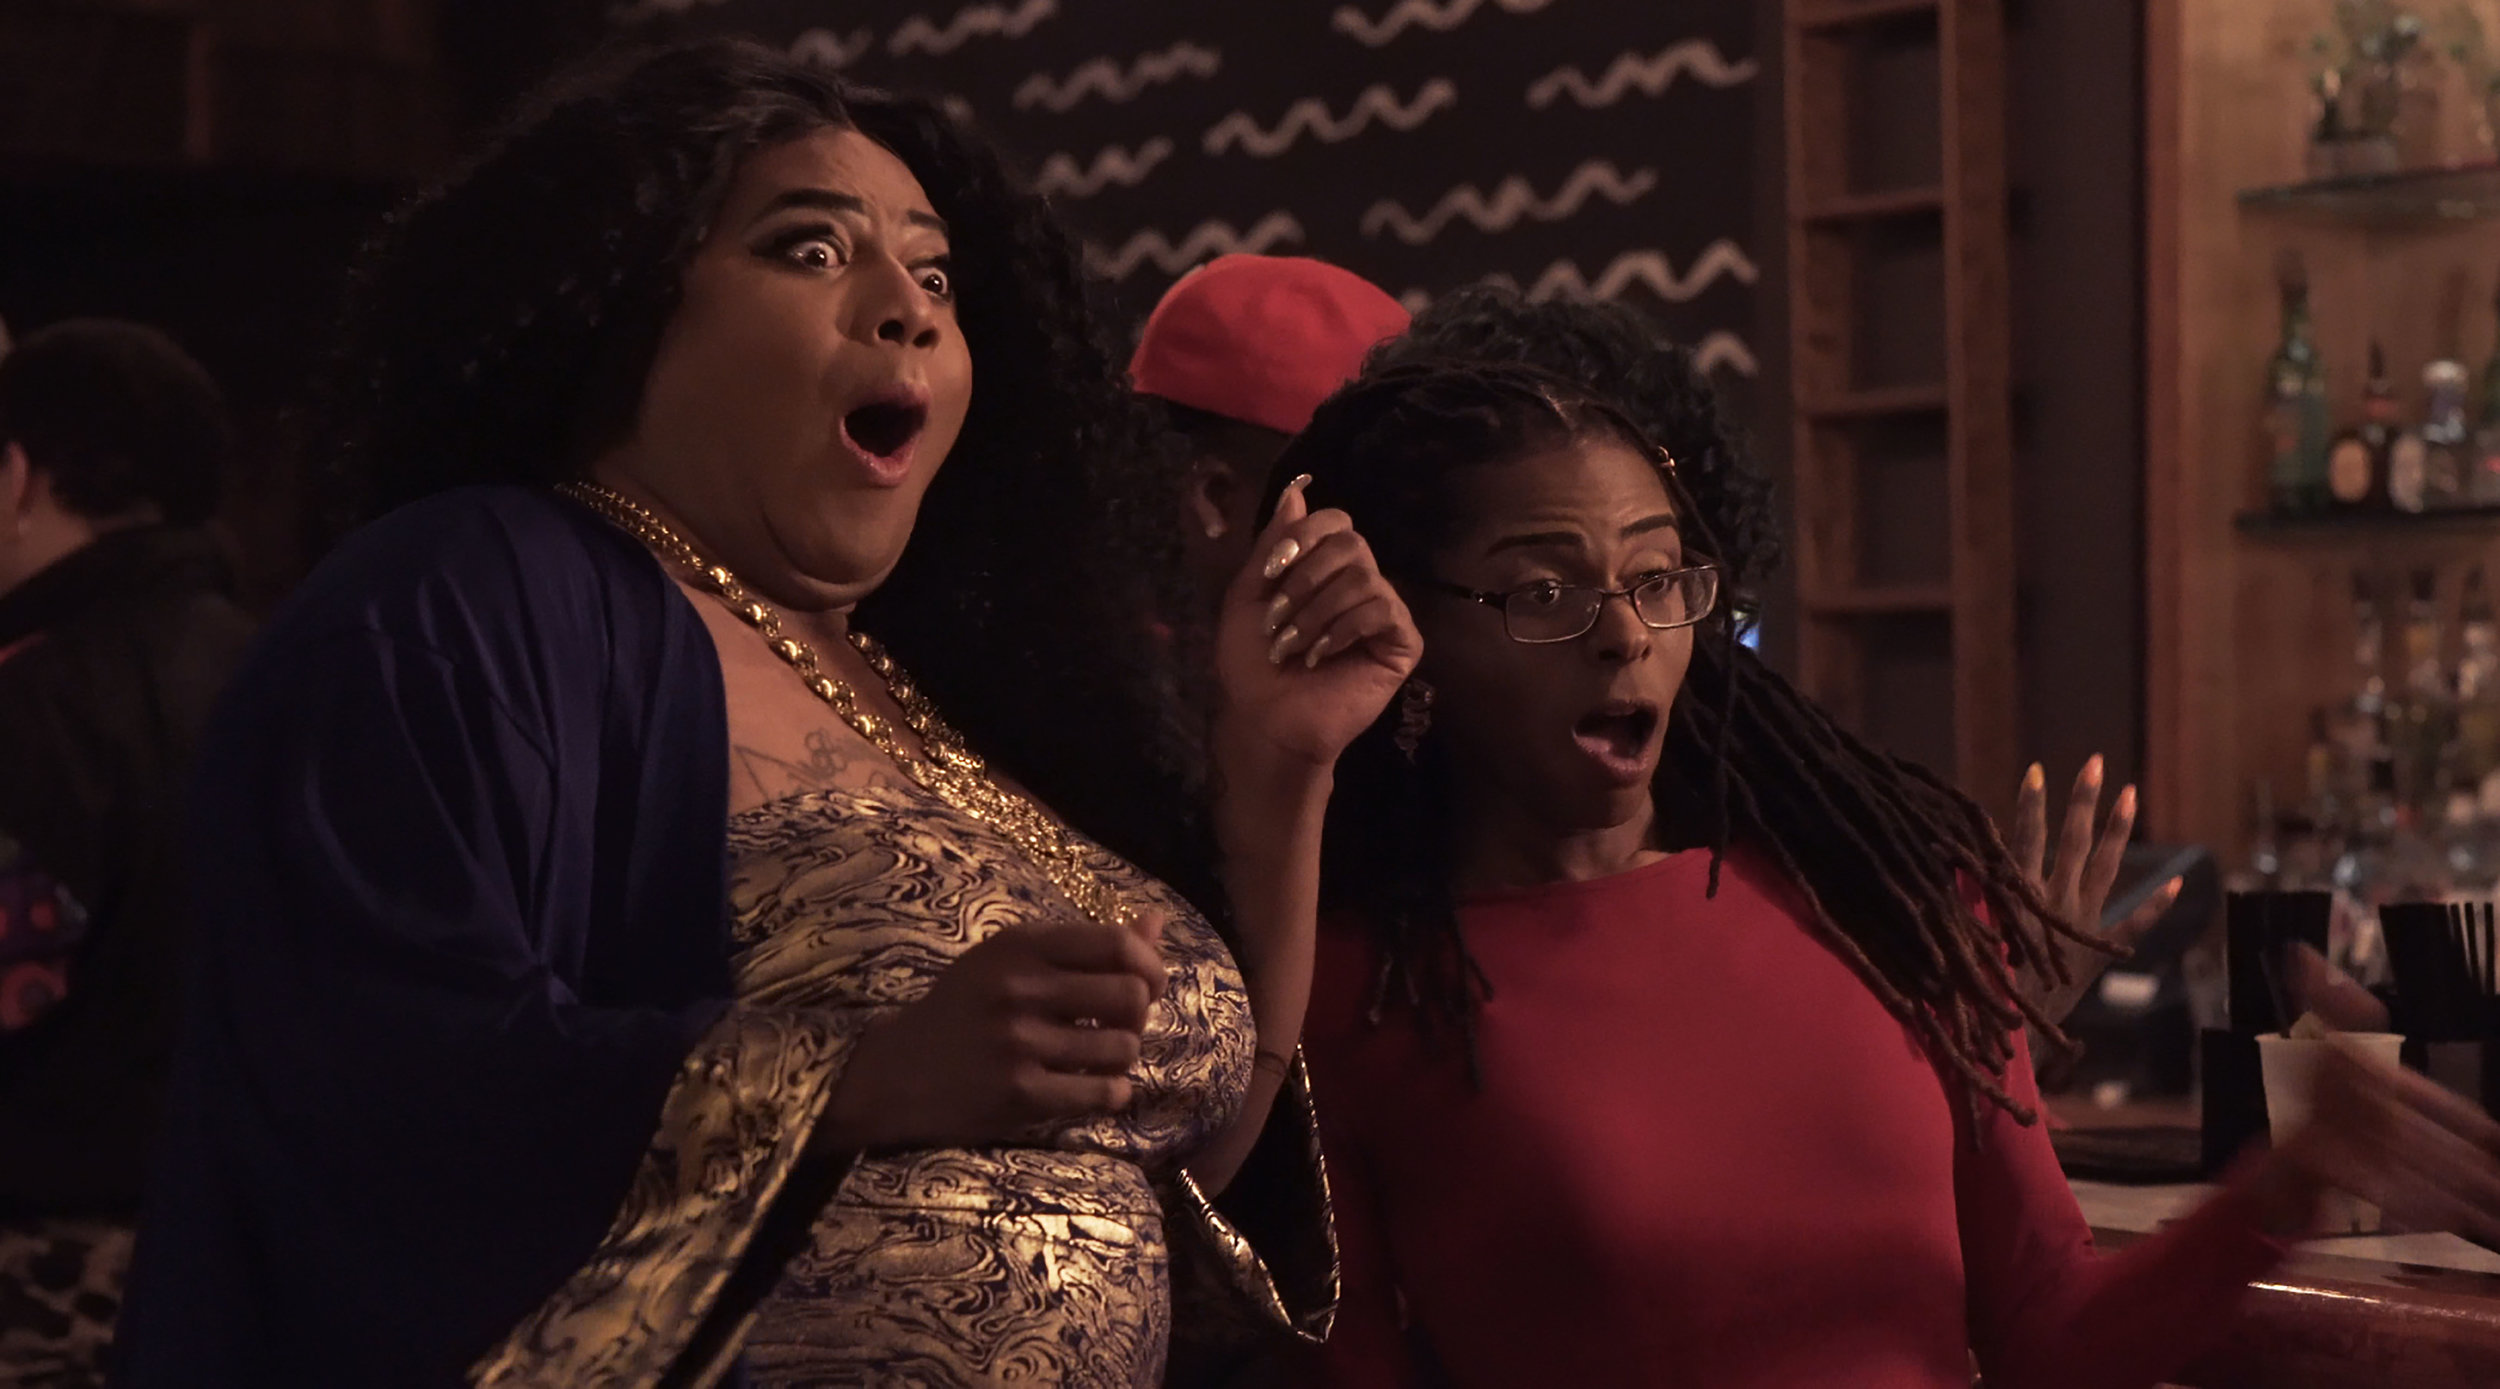 Shevon and Amirah react to Chanel's outlandish birthday look as she arrives to the club.